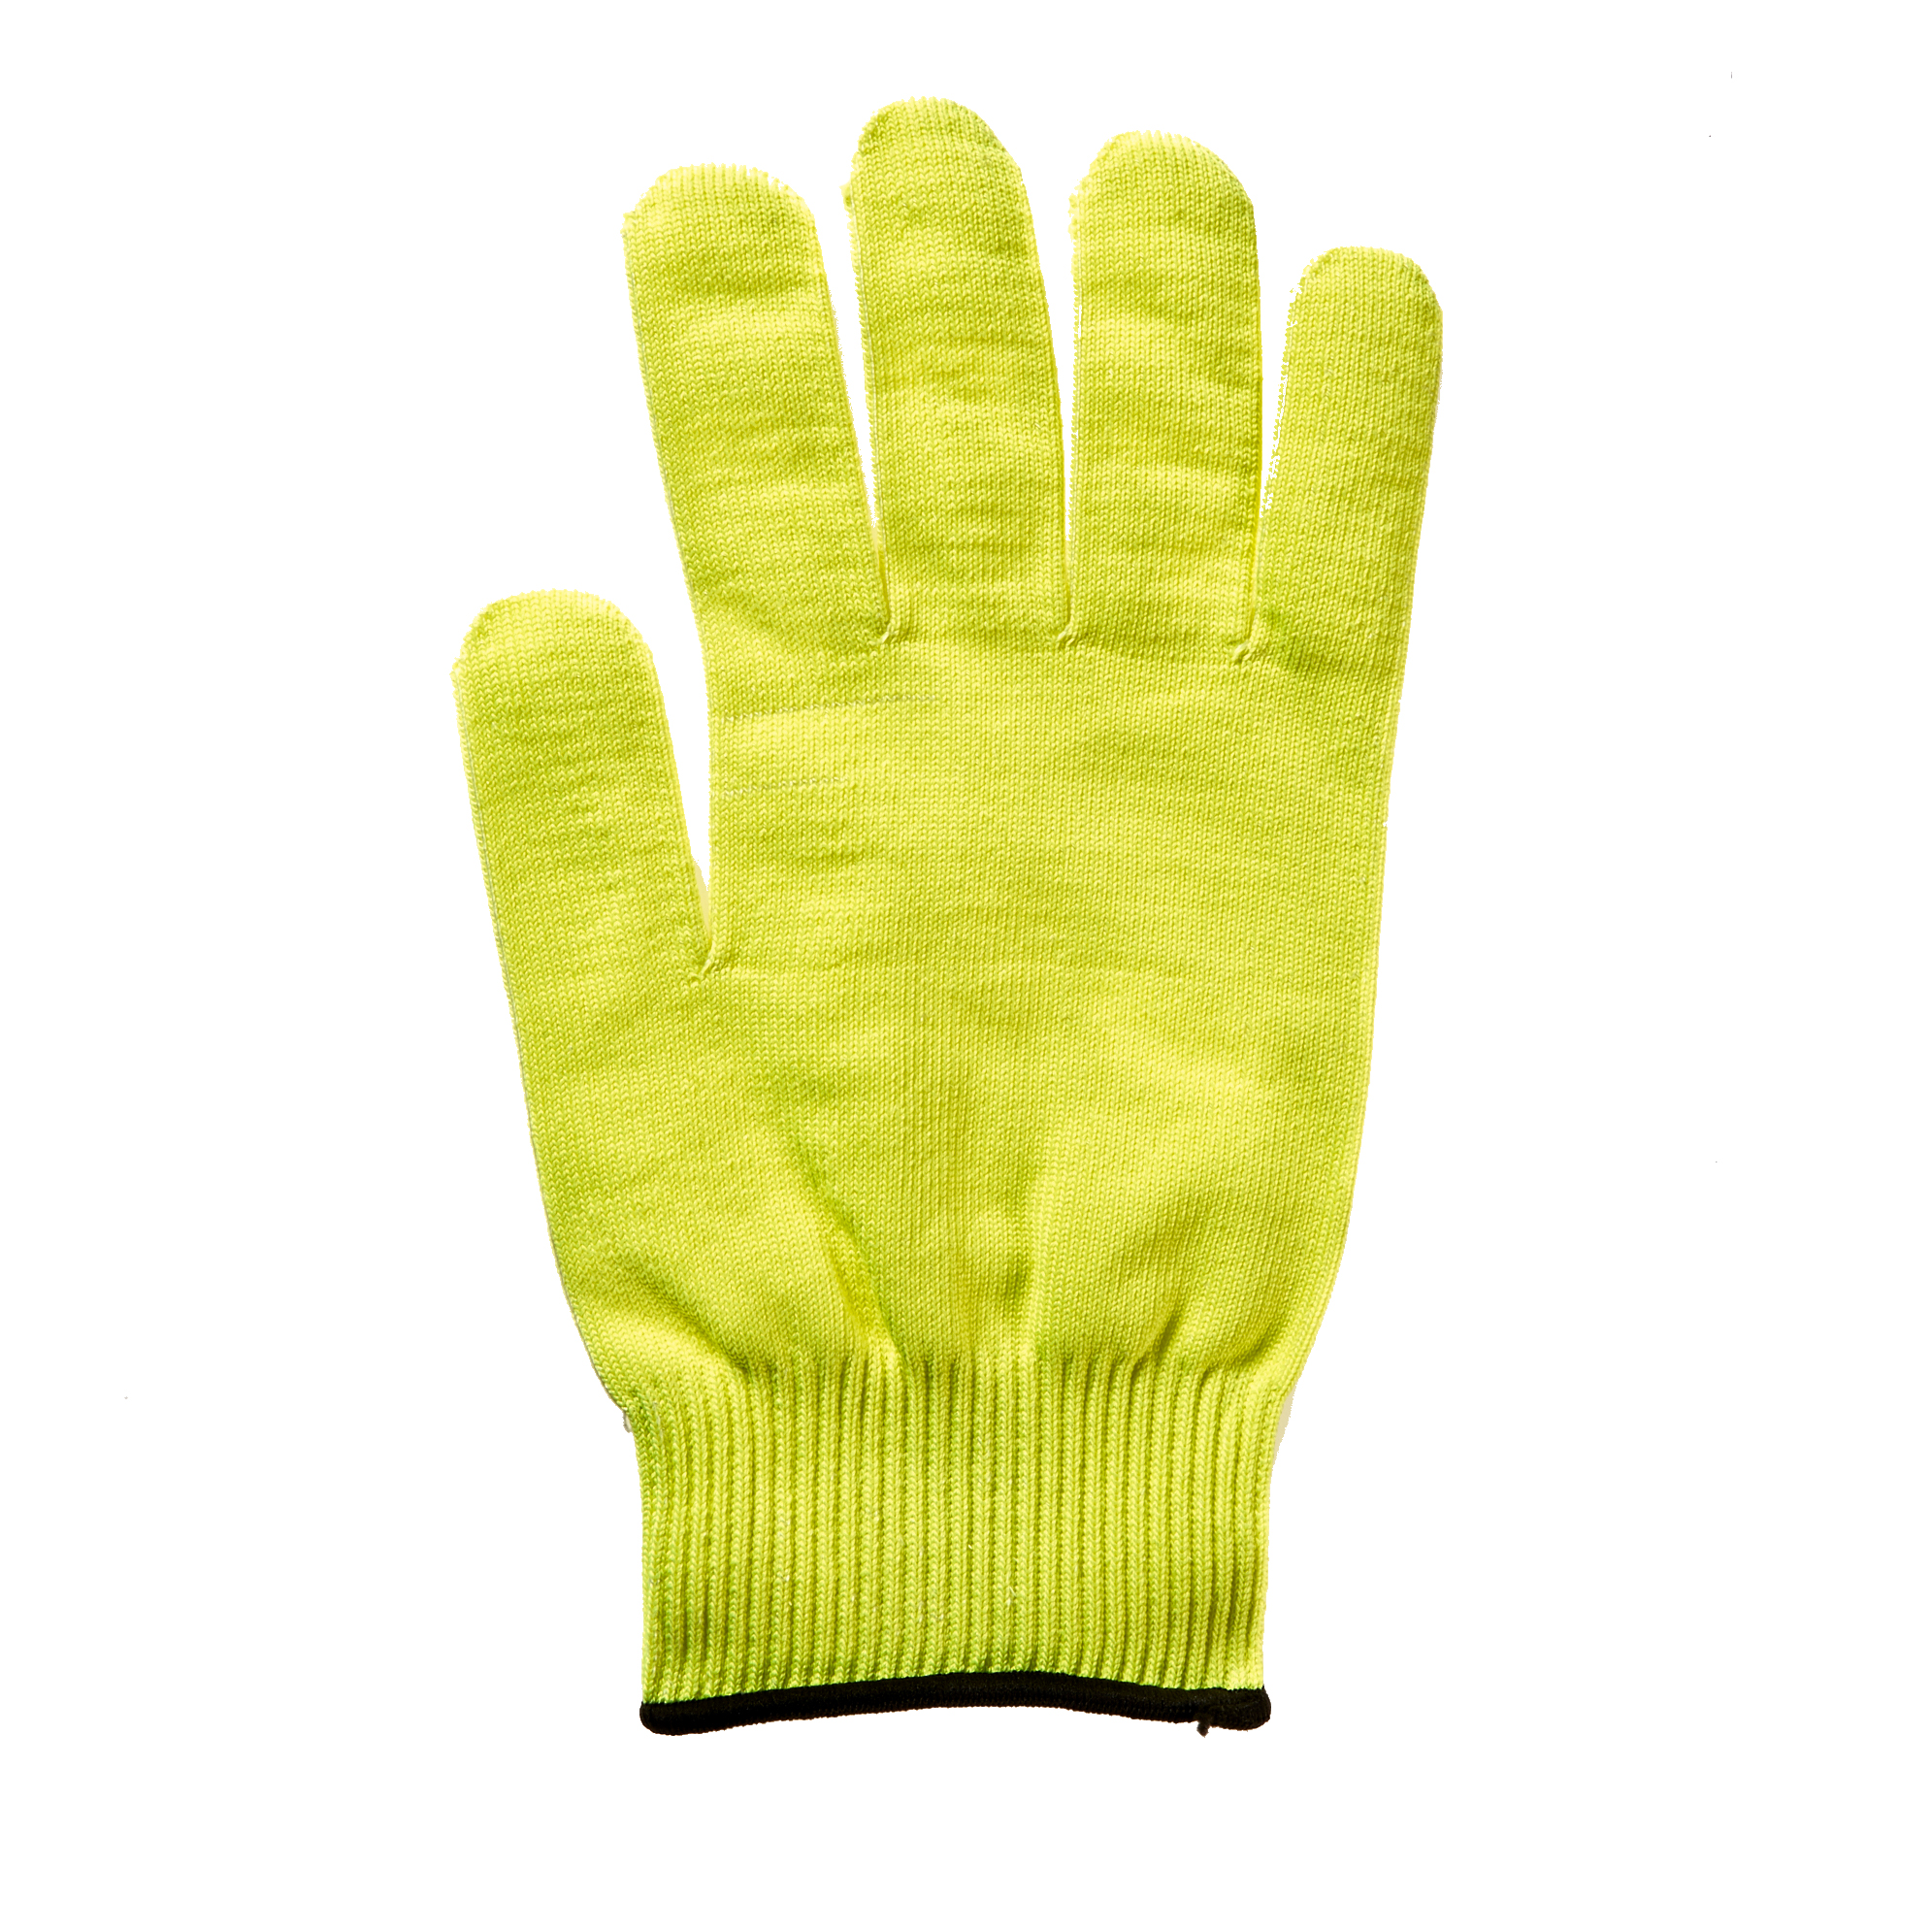 Mercer Culinary M33415YL1X glove, cut resistant